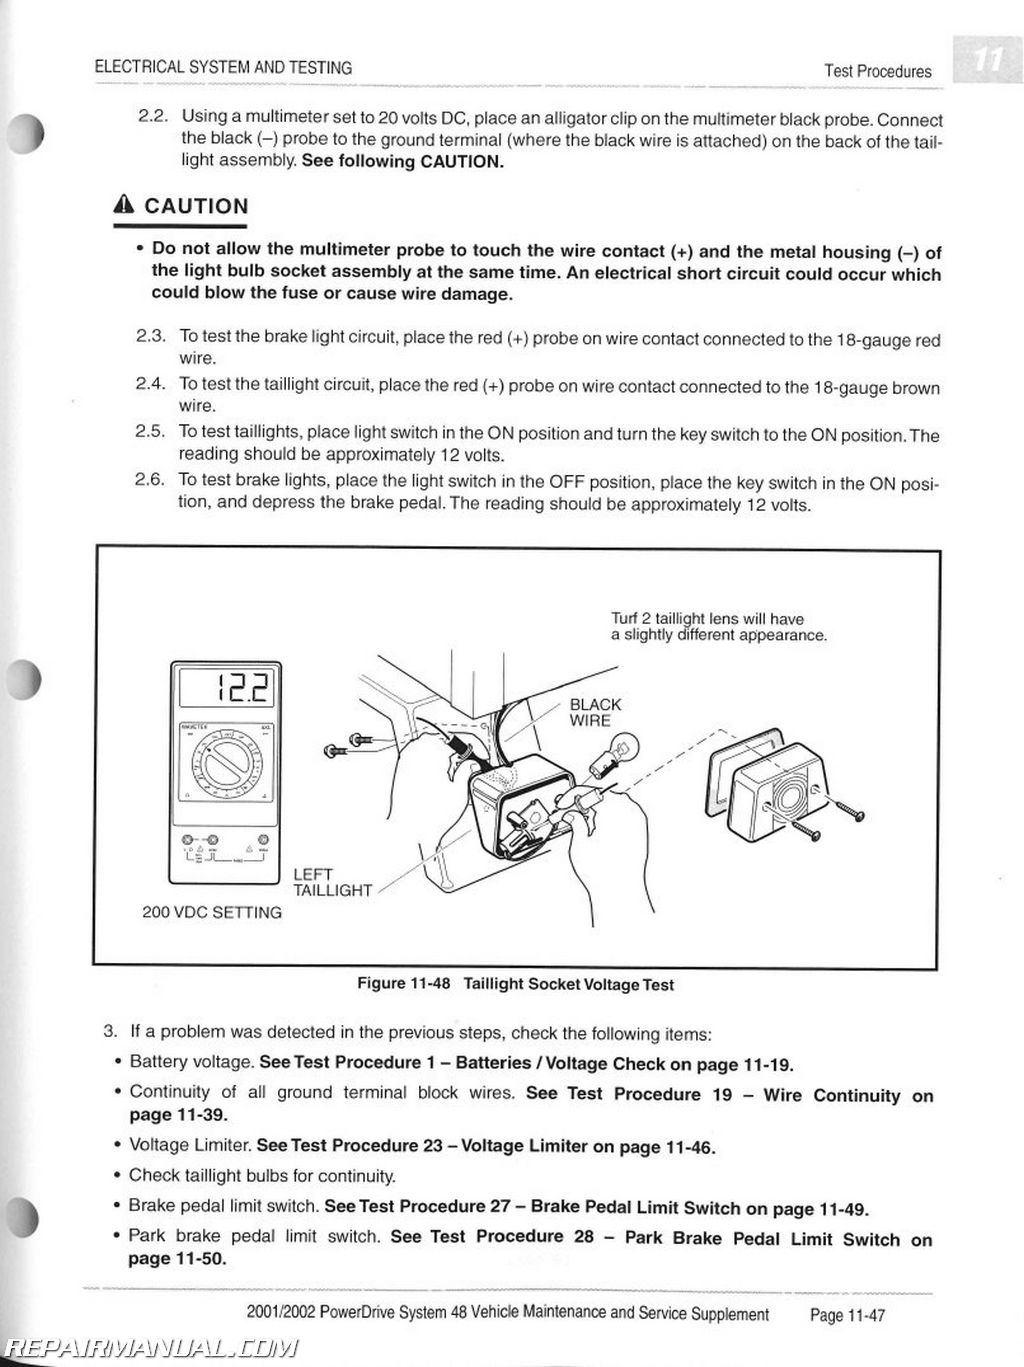 4338376 furthermore 5w3gz Caterpillar 2001 420d Backhoe When Turn Switch moreover Viewit also 4 Post Wiring Diagram further Need Help With 12v Charging System For Motorcycle. on tractor battery wiring diagram